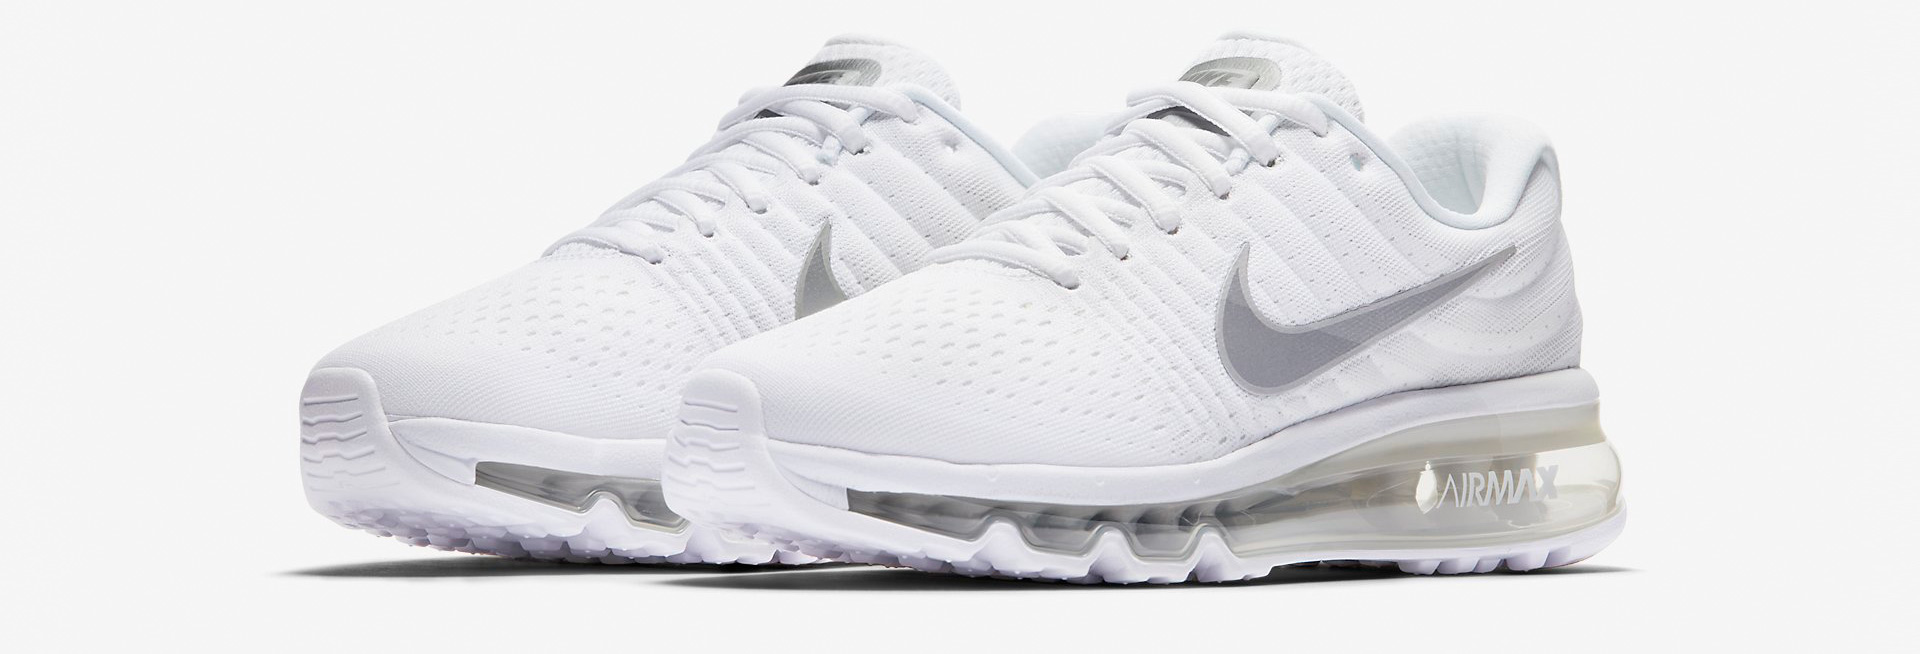 nike air max 2017 wit dames